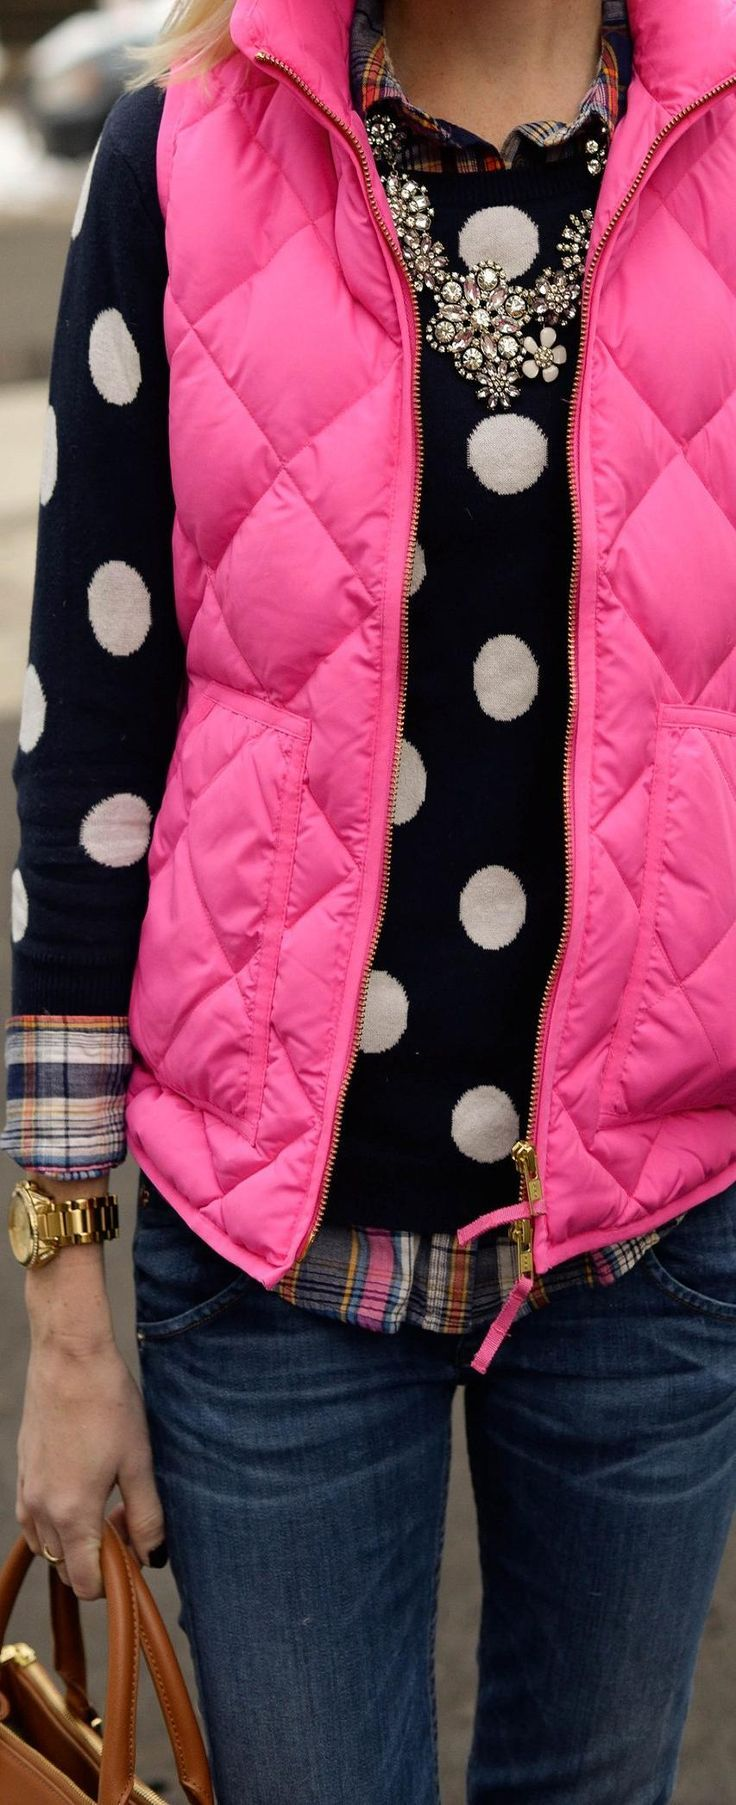 For some reason I'm really drawn to this.  I love all of the patterns and prints and the pink.  I don't usually feel comfortable in vests, but I love the way this all looks together.